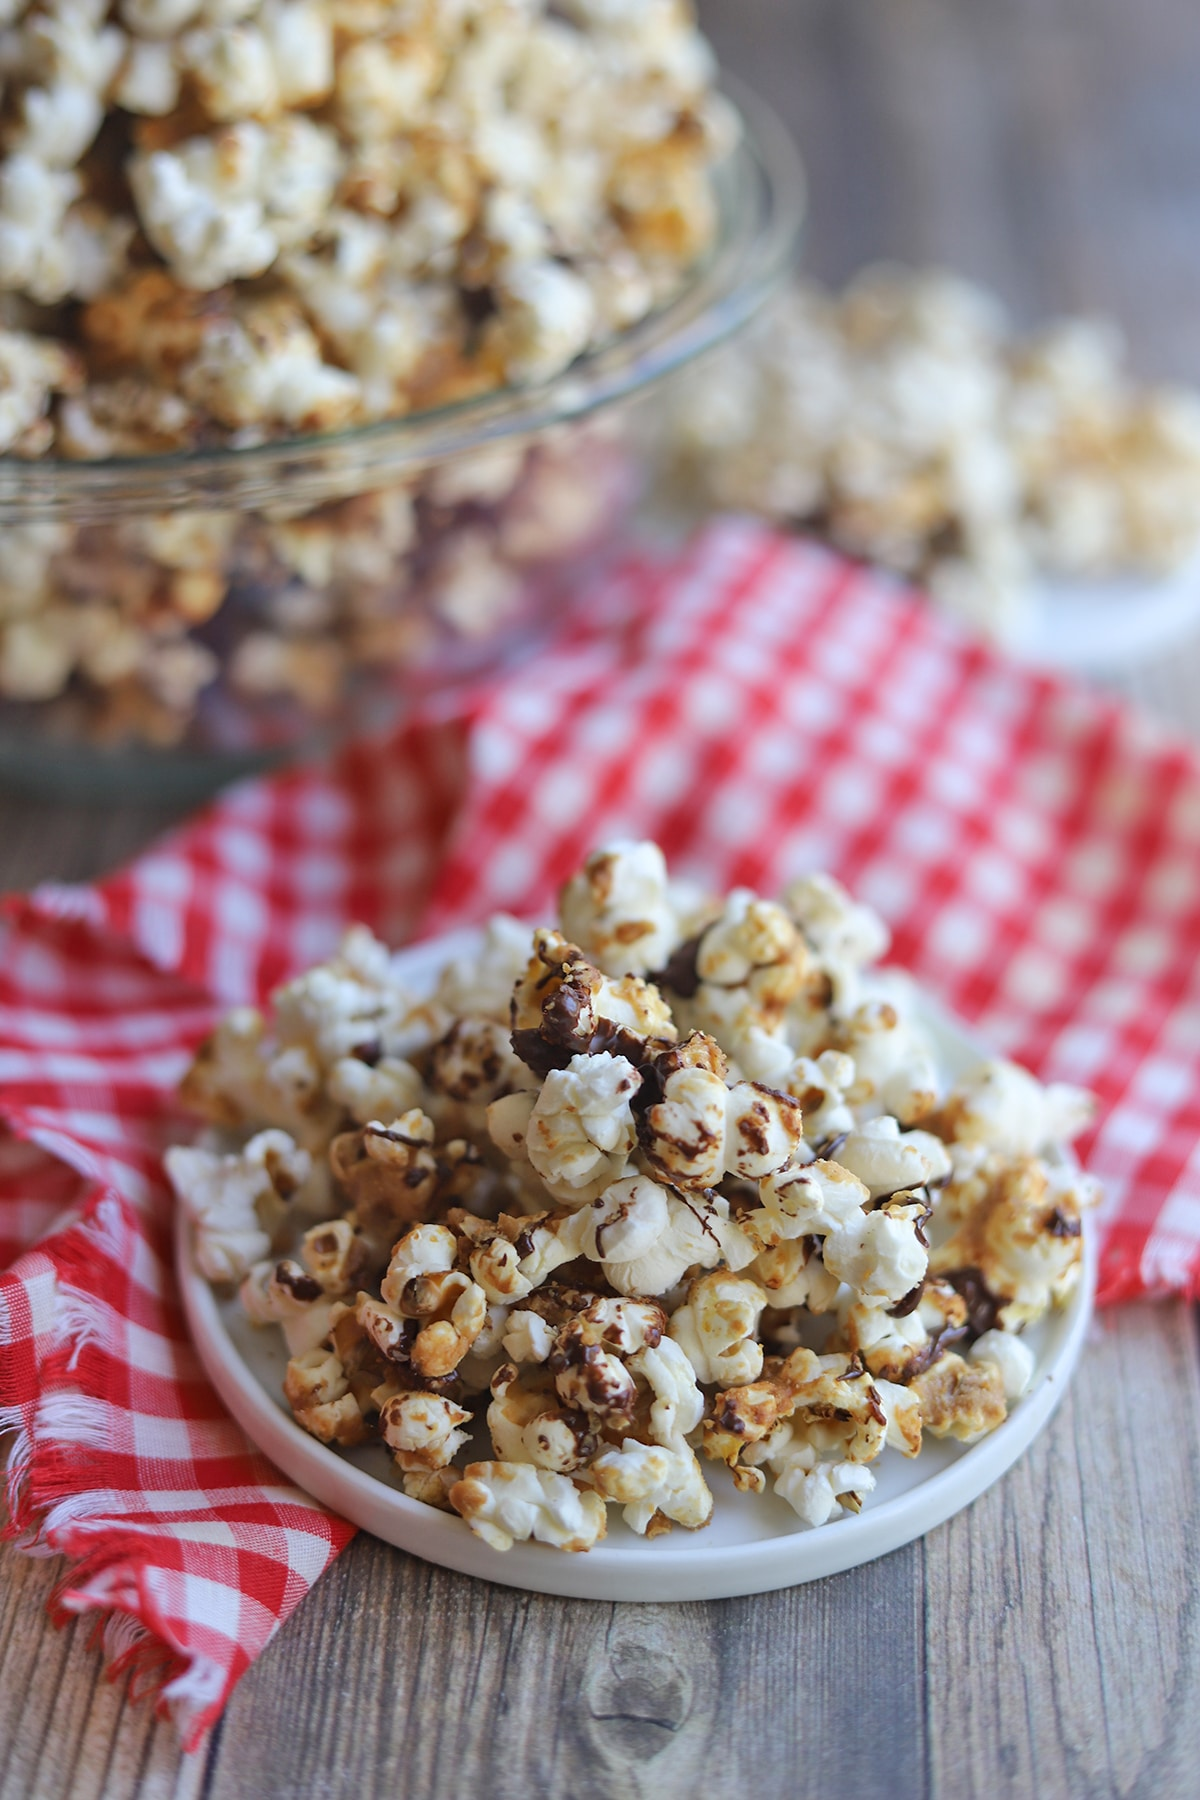 Small plate with flavored popcorn.